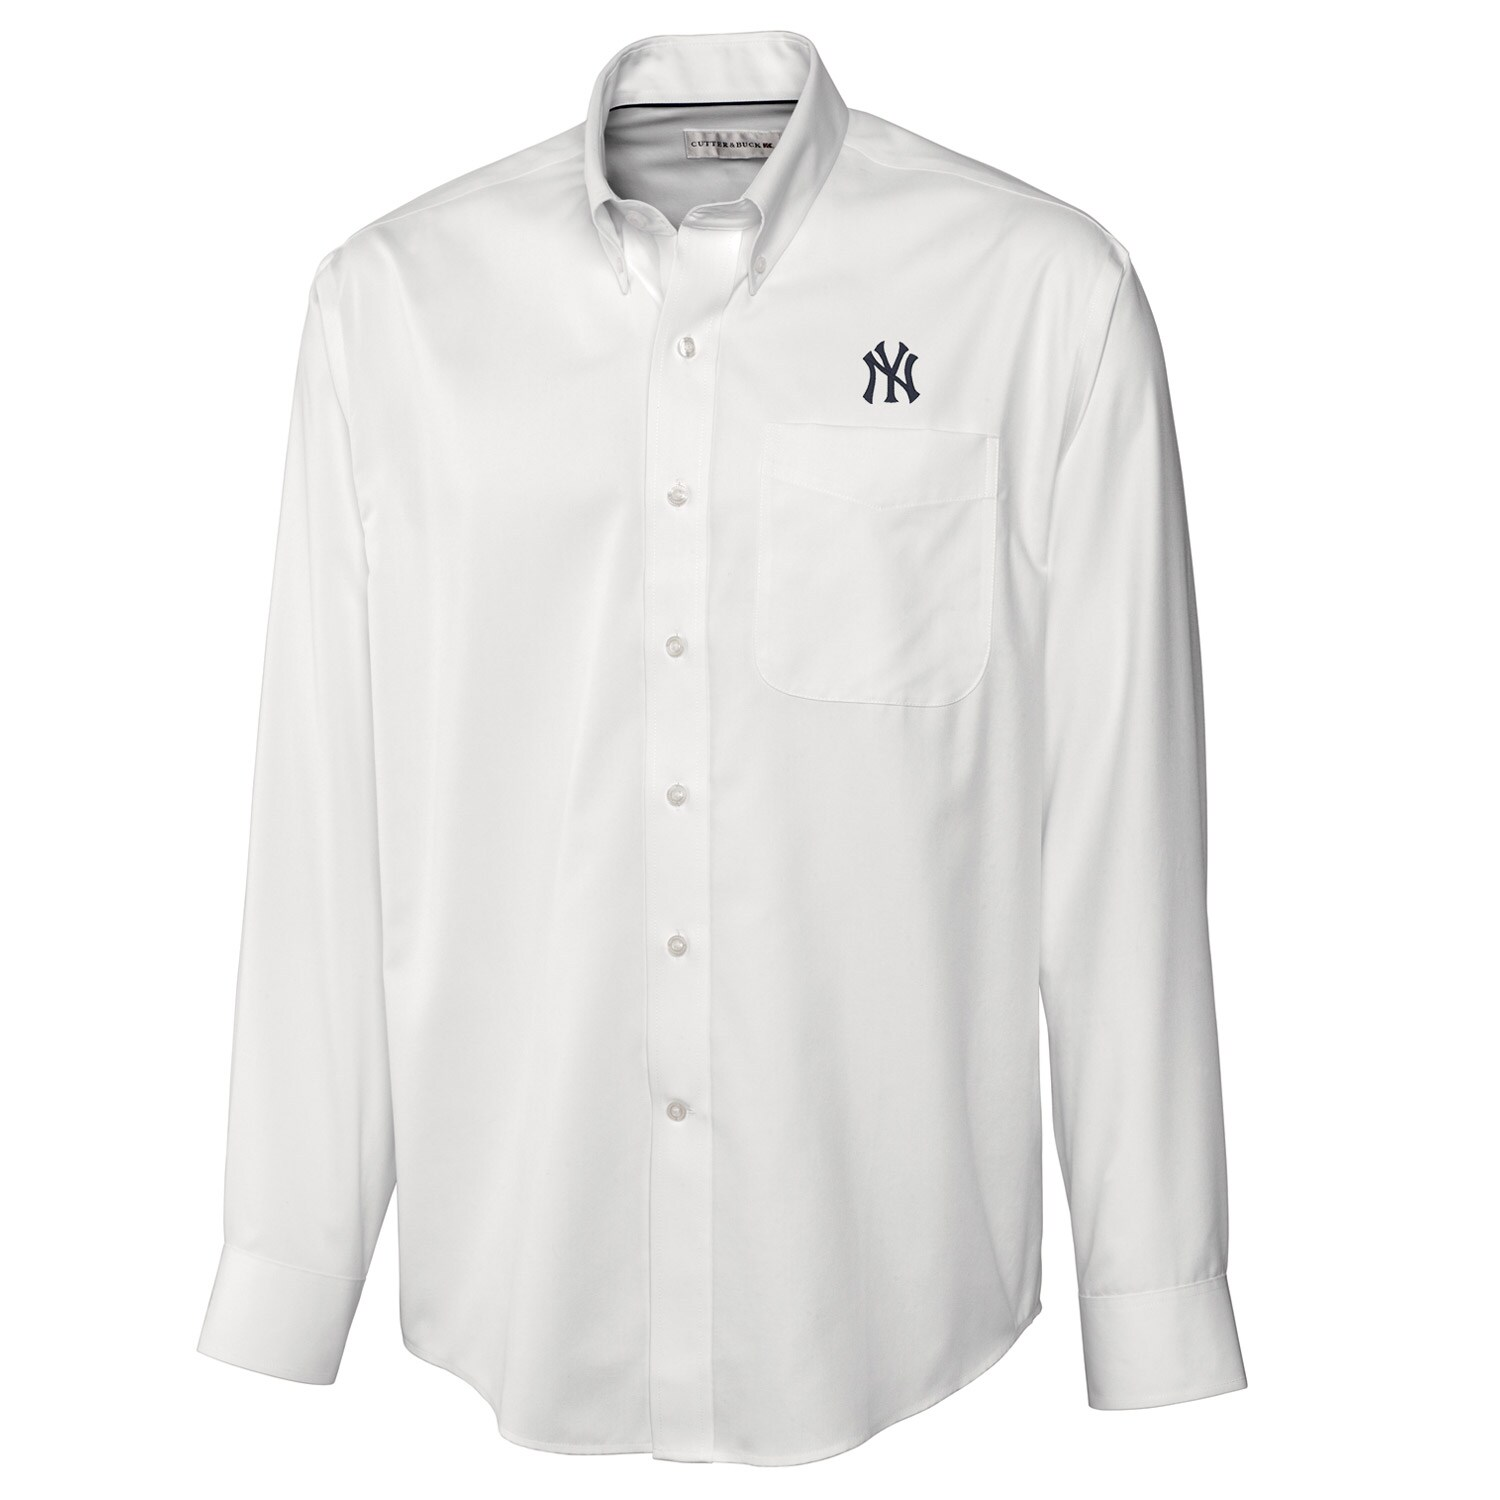 New York Yankees Cutter & Buck Big & Tall Epic Easy Care Fine Twill Long Sleeve Shirt - White